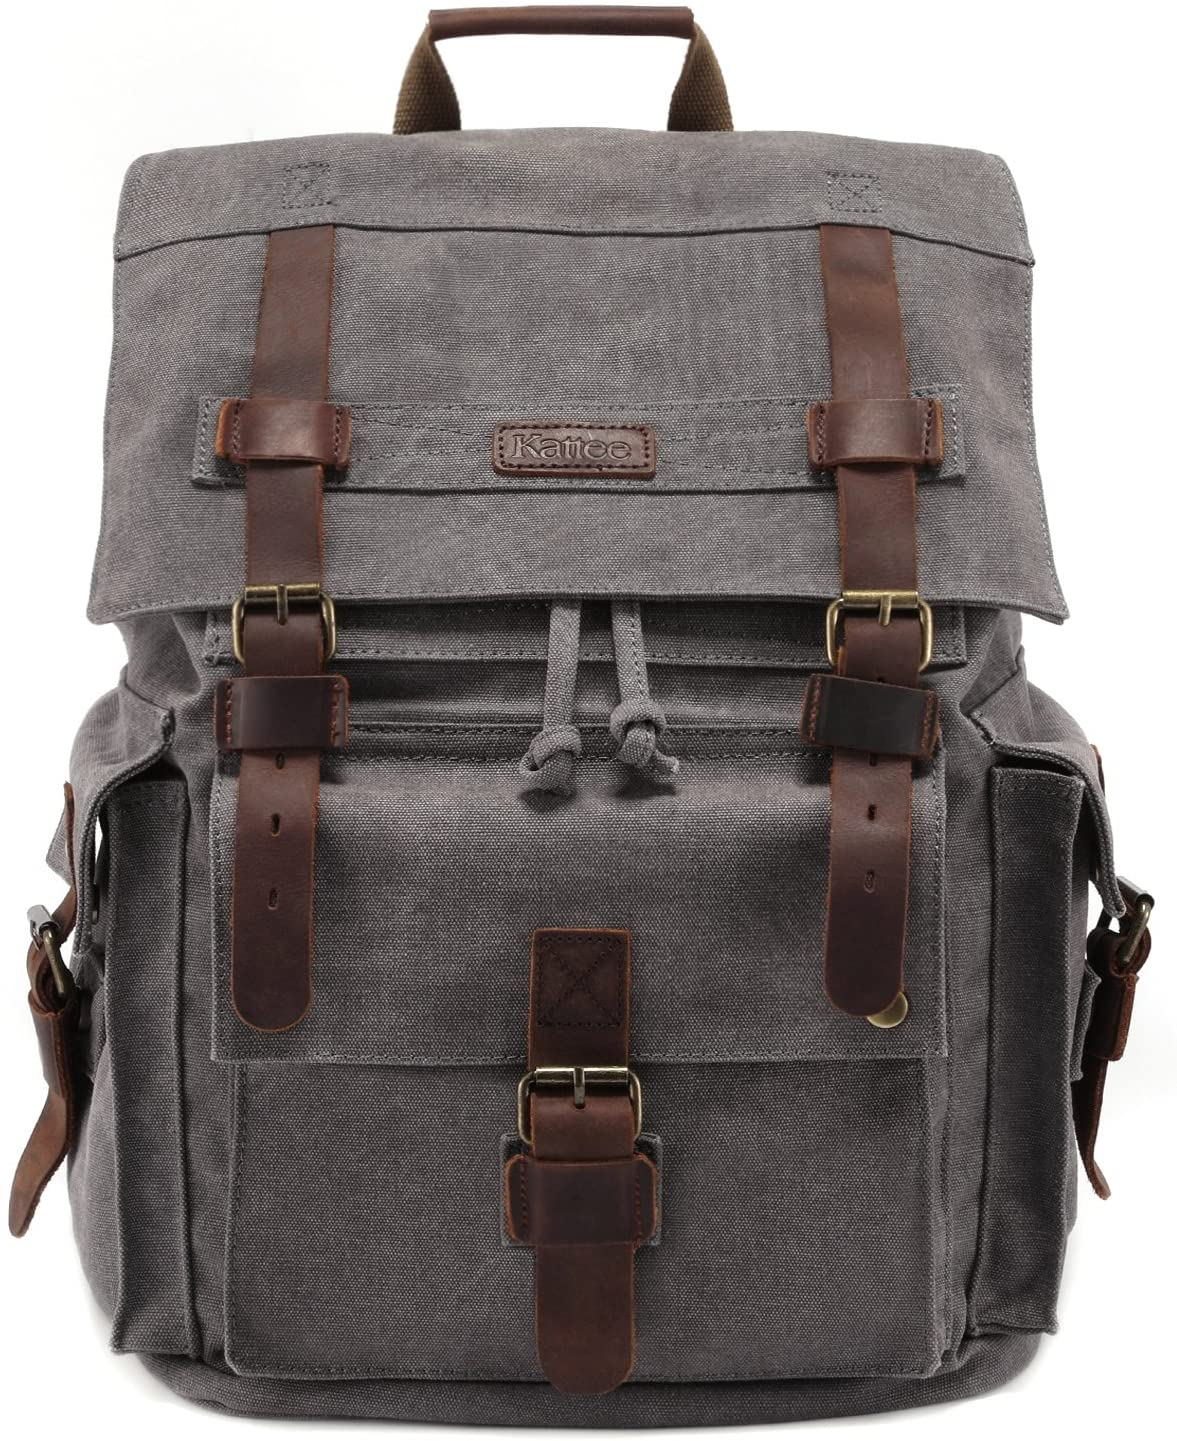 Waxed Canvas Roll Top Rucksack with Leather StrapsHandles Waxed Canvas Messenger-Large Gray and Black Bag Perfect for Traveling